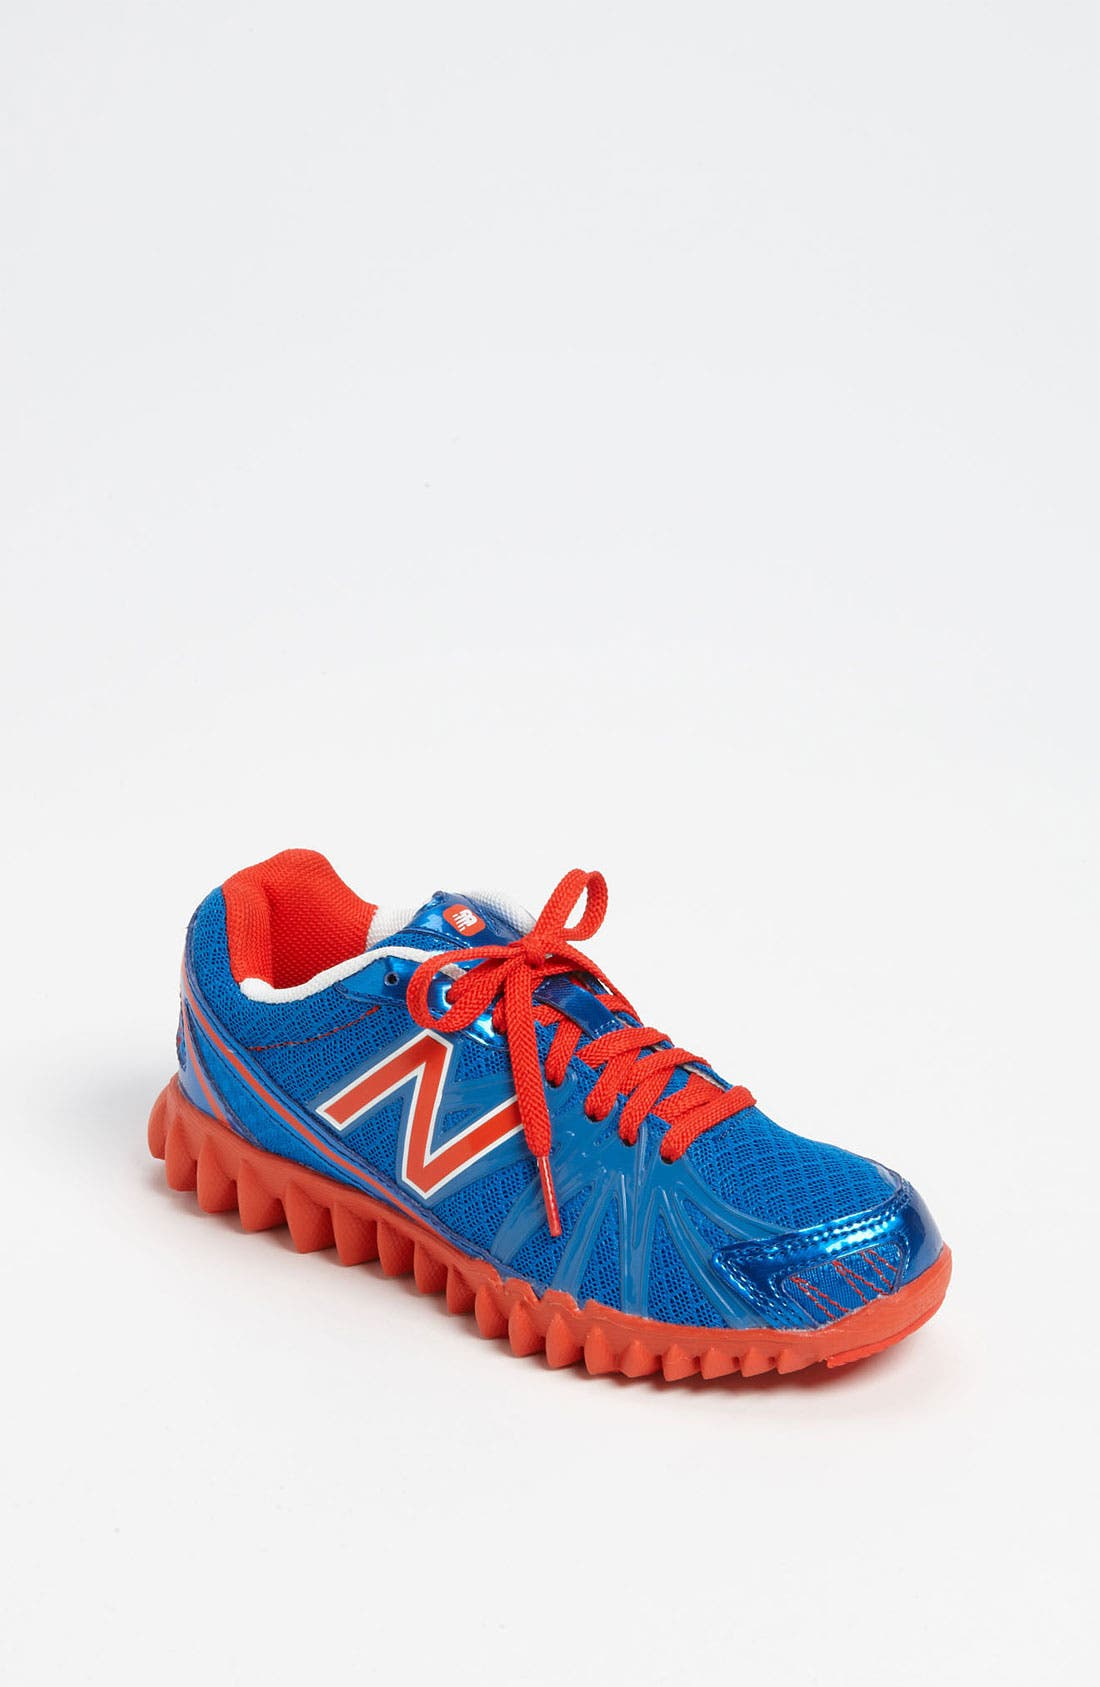 Main Image - New Balance 'Gruve 2750' Running Shoe (Toddler, Little Kid & Big Kid)